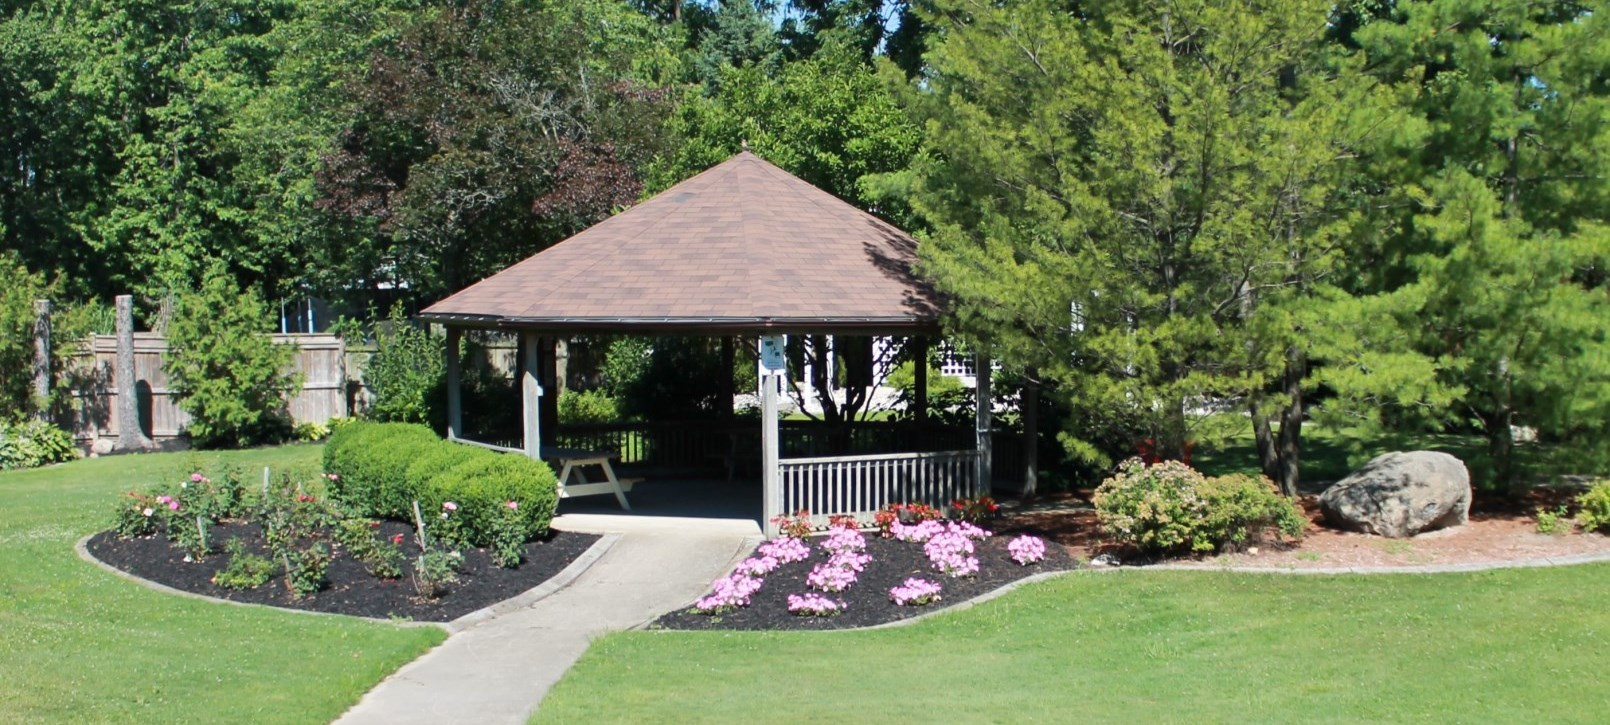 Gazebo and gardens in Watford